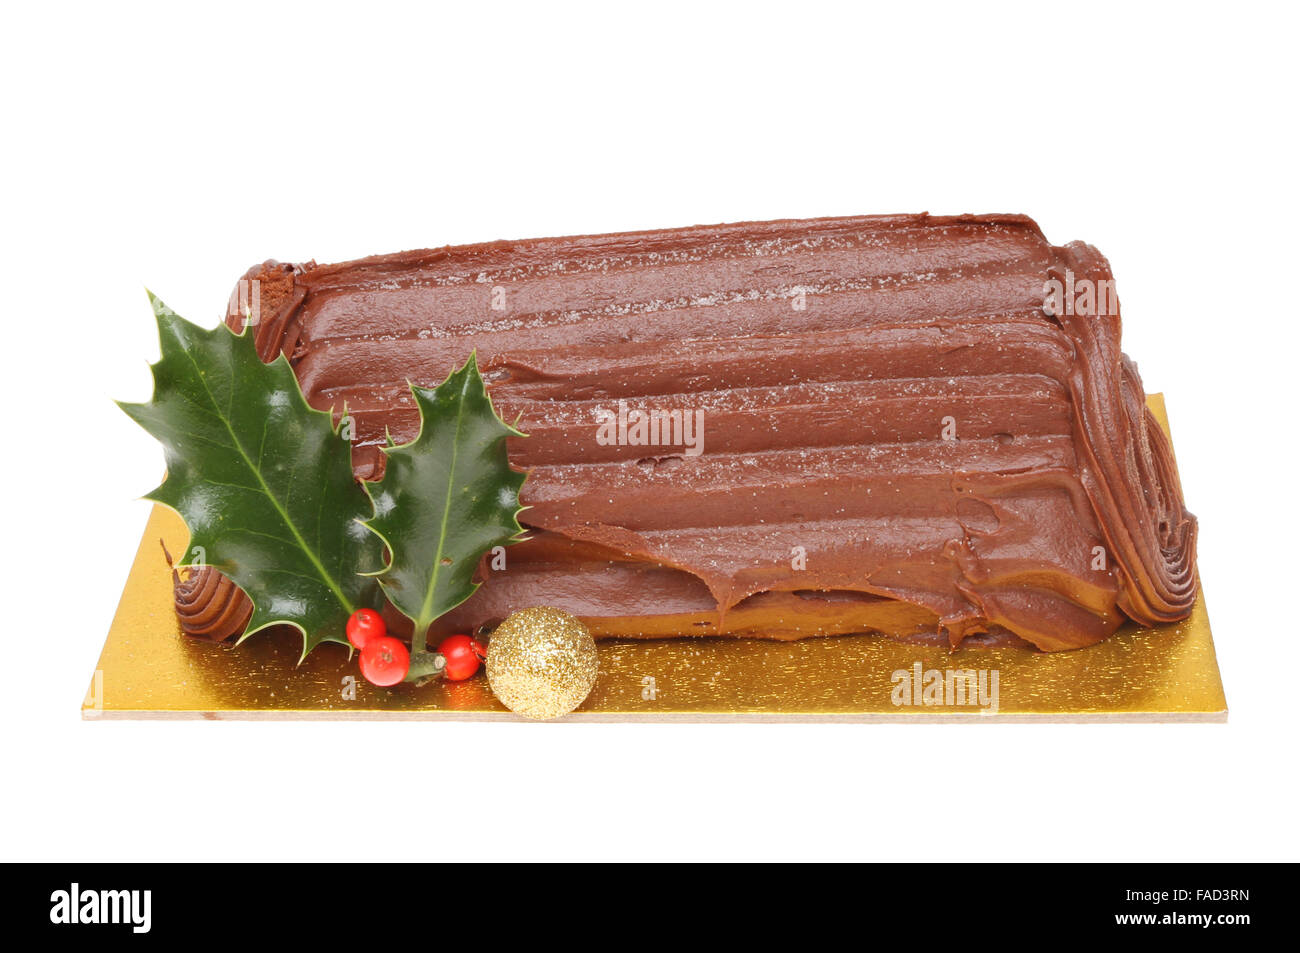 Chocolate Yule log decorated with holly and a Christmas bauble isolated against white - Stock Image